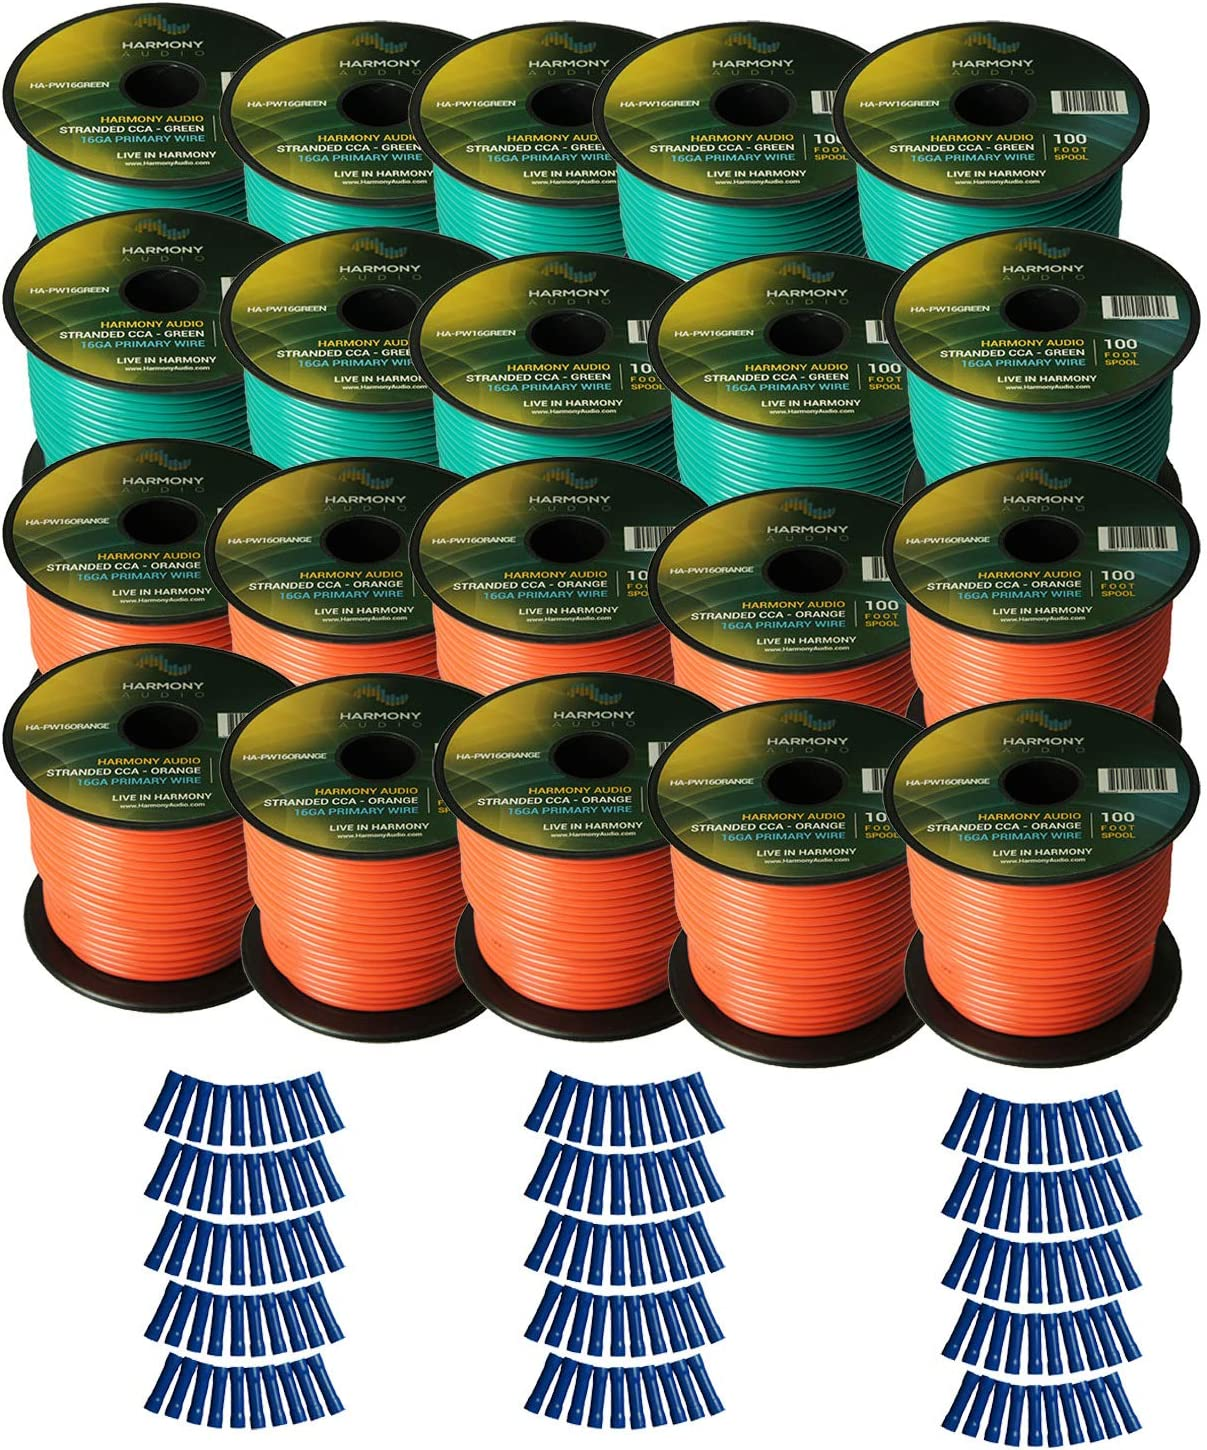 Harmony Audio Primary Single Conductor 16 Gauge Power or Ground Wire - 20 Rolls - 2000 Feet - Green & Orange for Car Audio/Trailer/Model Train/Remote